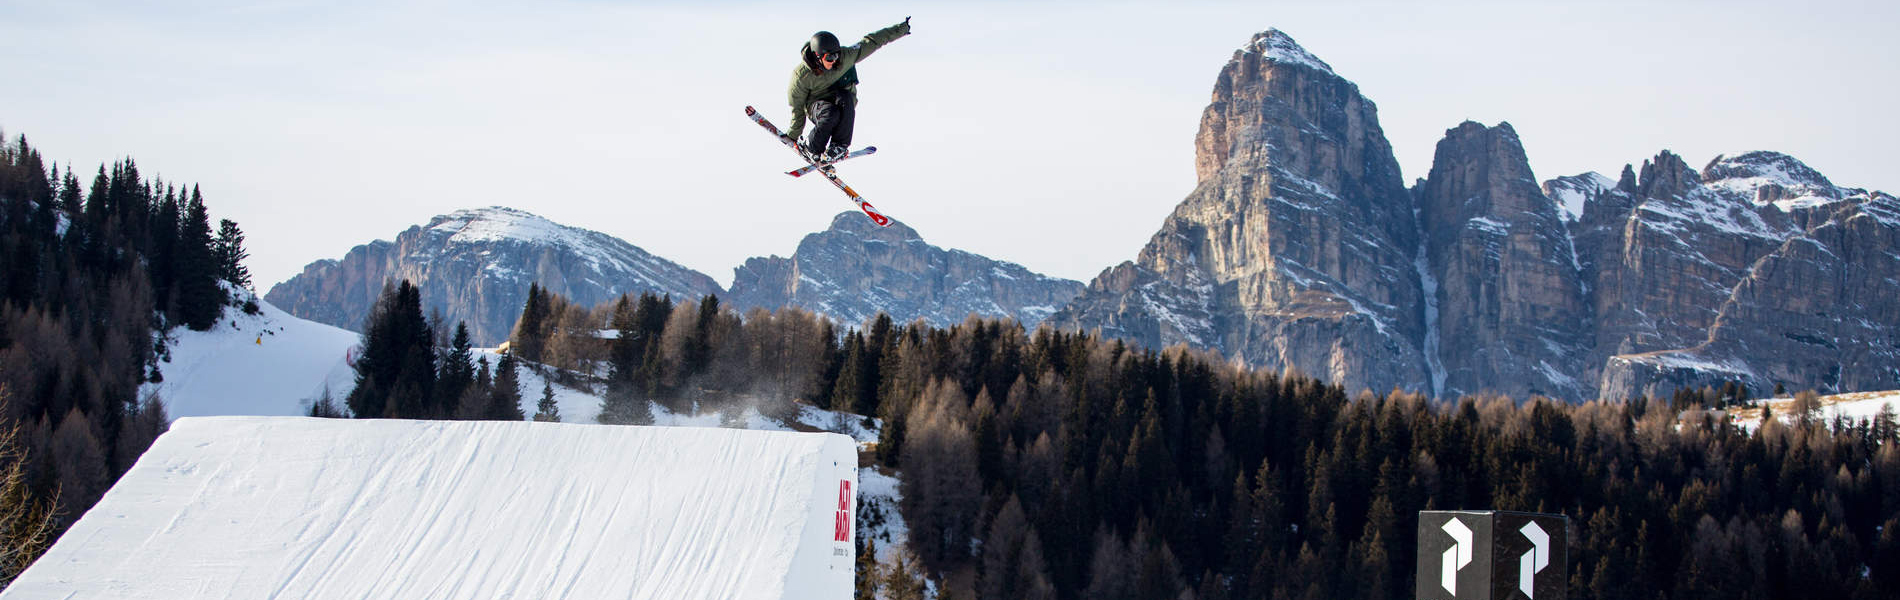 Back-to-back Triple im Snowpark Alta Badia